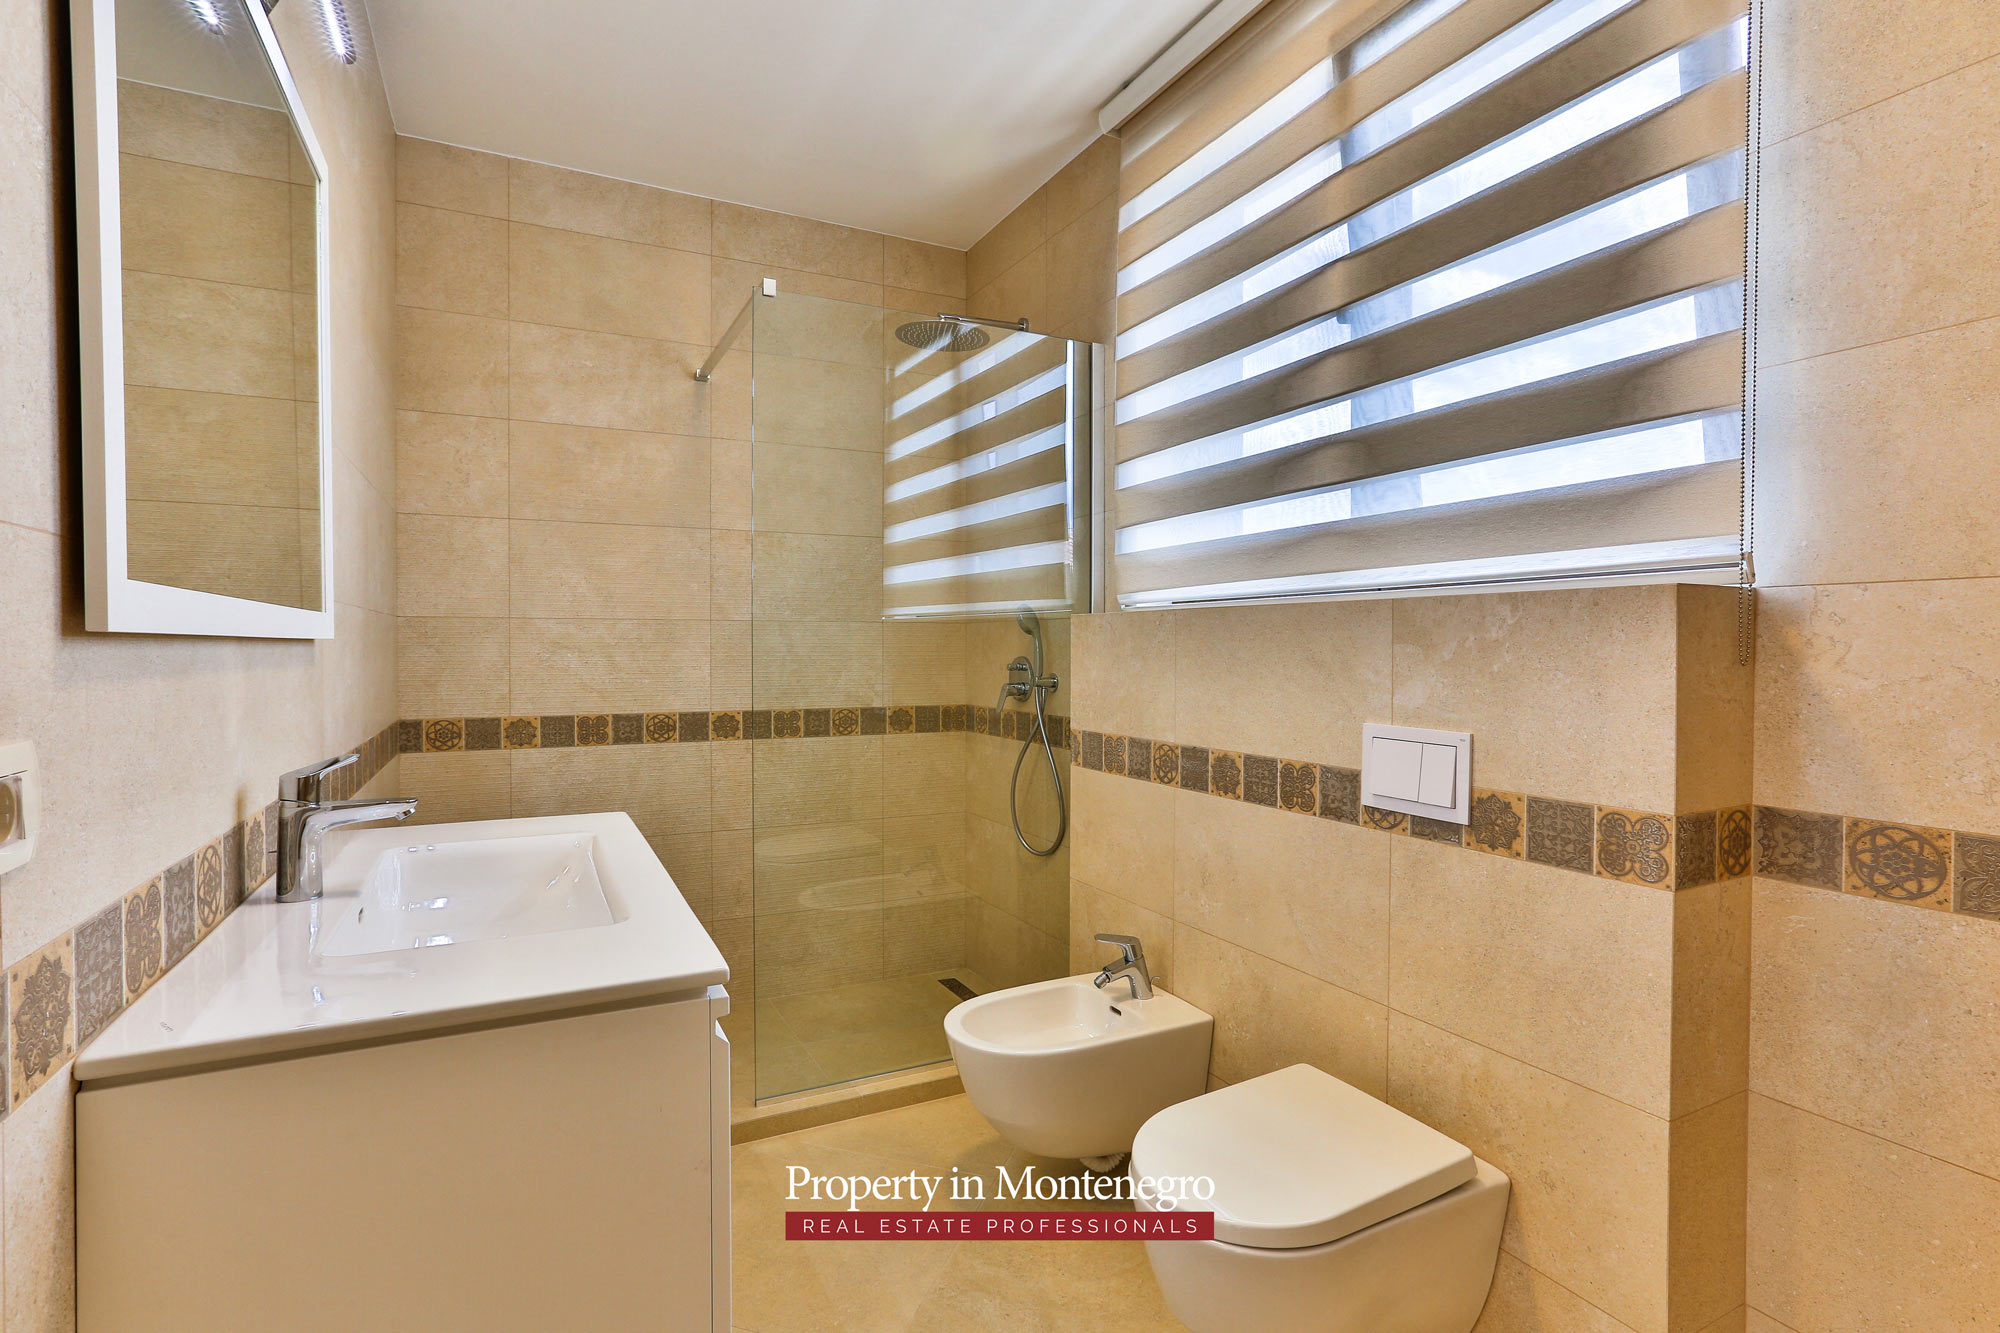 Luxury-villa-with-swimming-pool-for-sale-in-Tivat (11).jpg